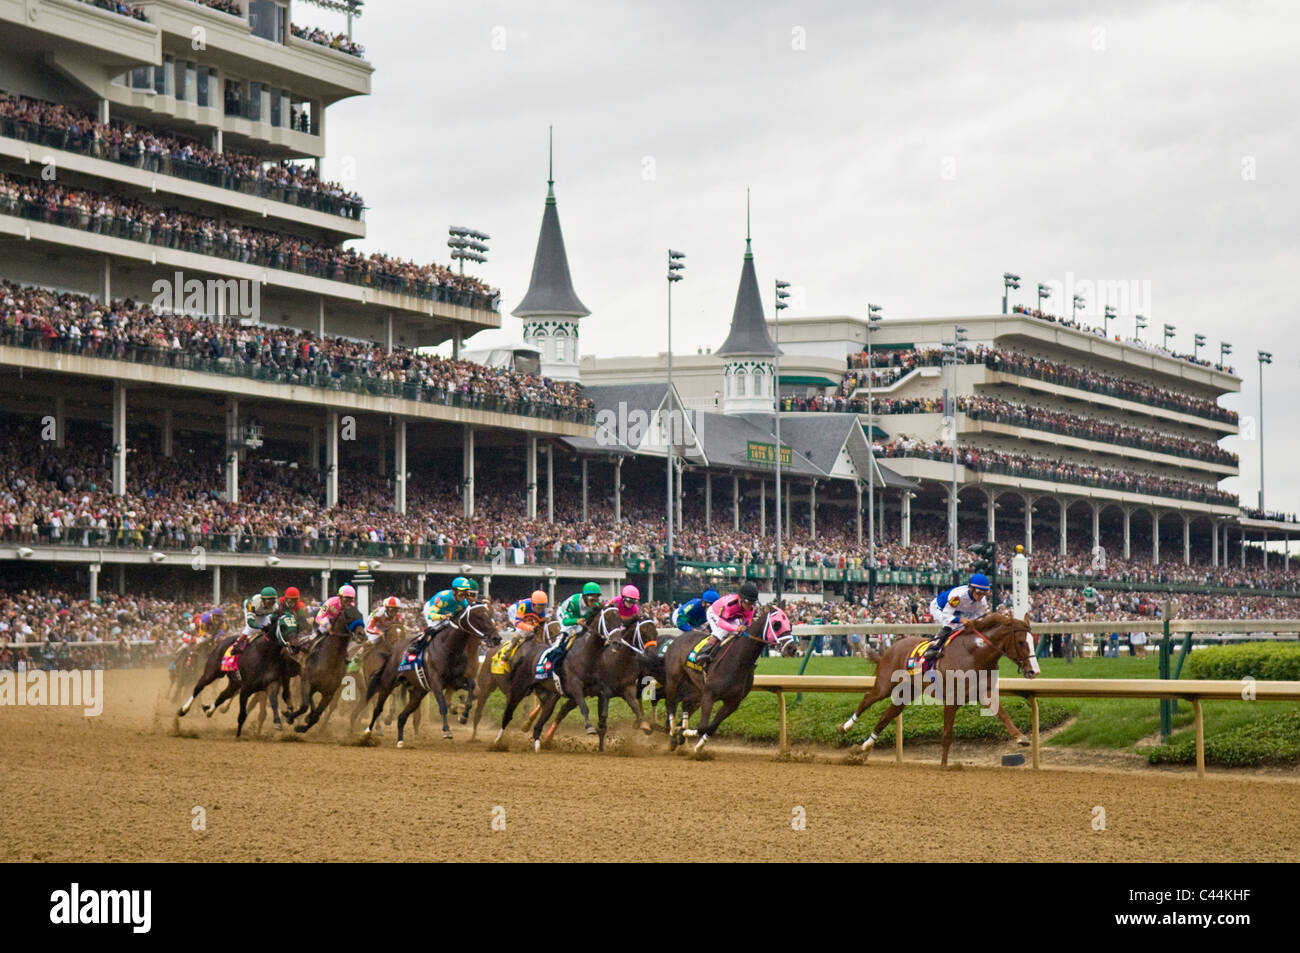 Horses Rounding the First Turn in the 2011 Kentucky Derby at Churchill Downs in Louisville, Kentucky - Stock Image